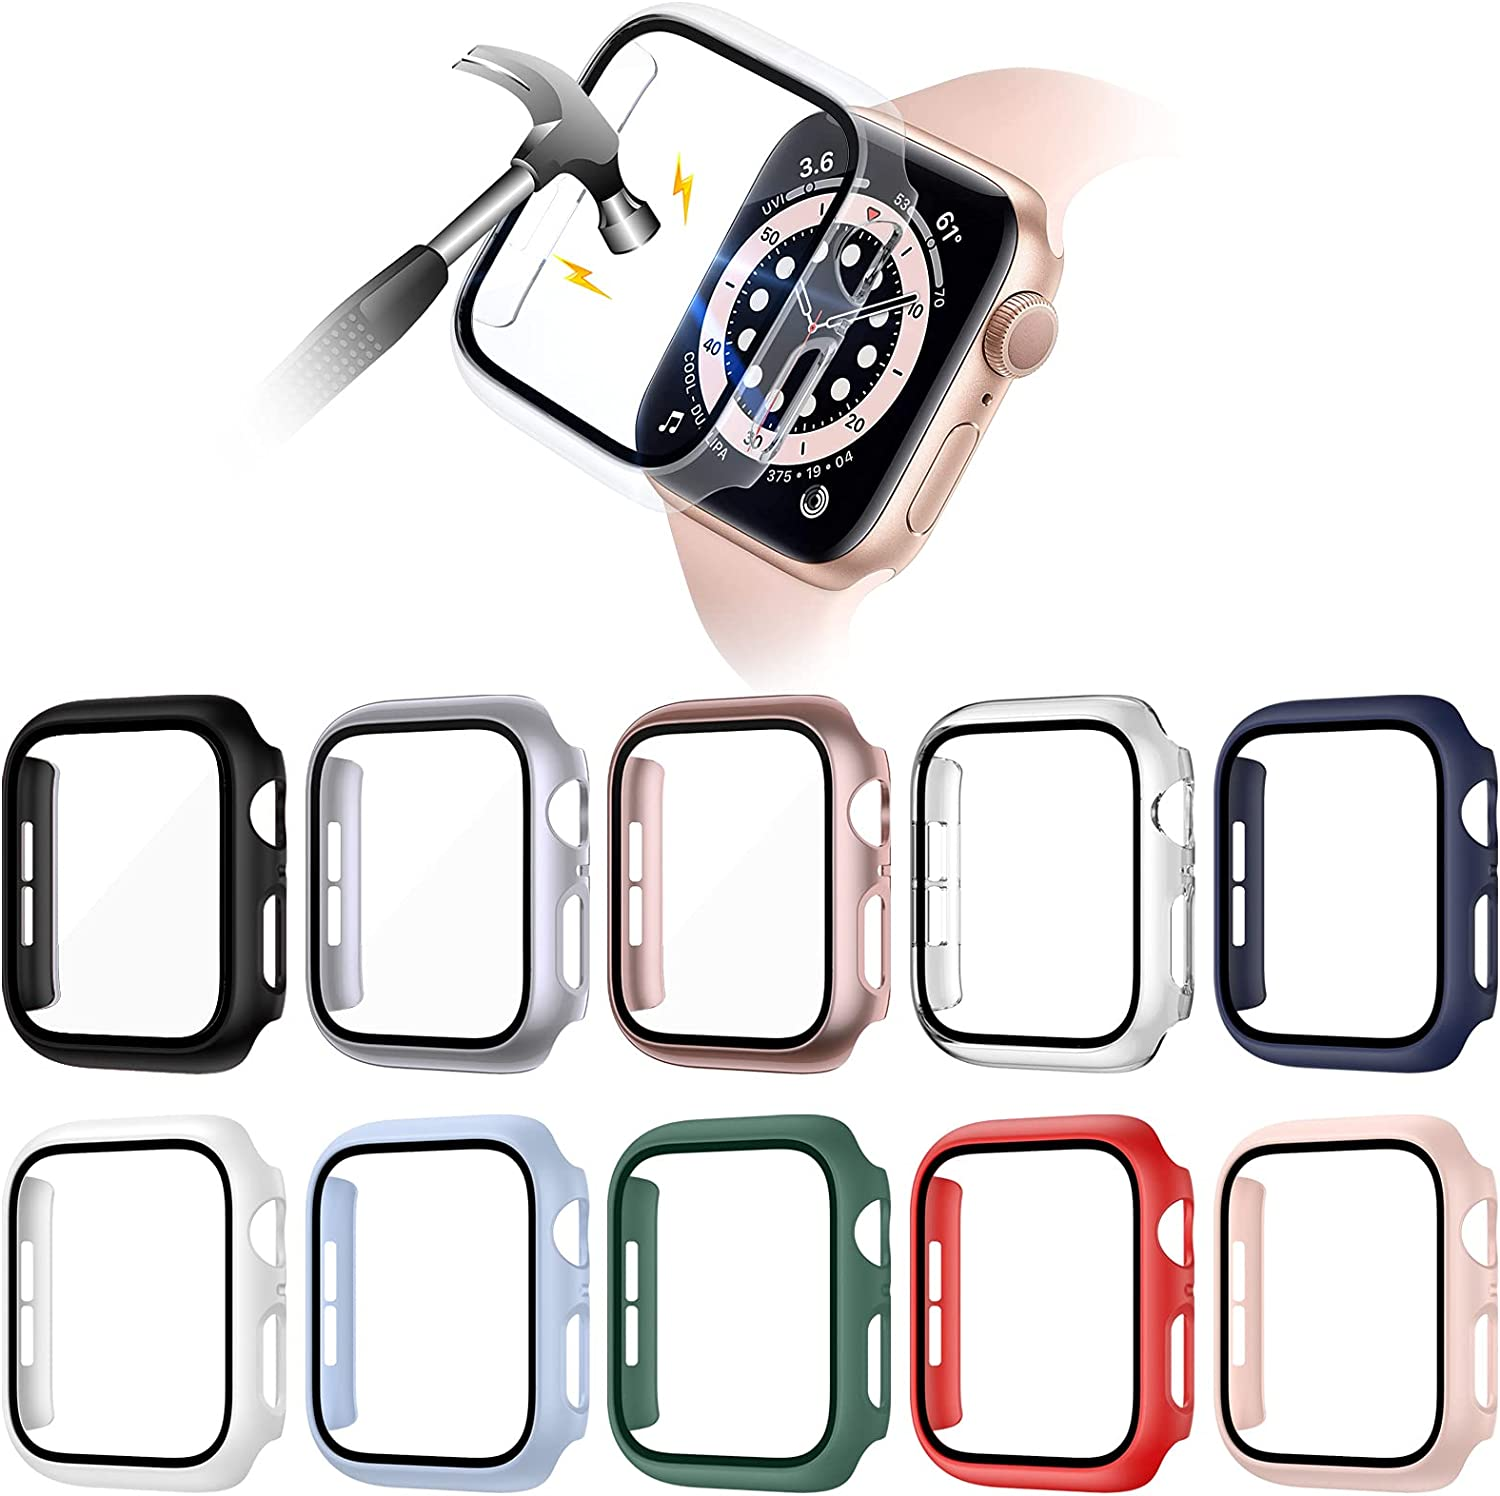 VASG [10 Pack] Hard PC Case Compatible with Apple Watch Series 6 / SE/Series 5 / Series 4 40mm with Built in Tempered Glass Screen Protector, Ultra-Thin Full Cover Bumper Compatible with iWatch 40mm